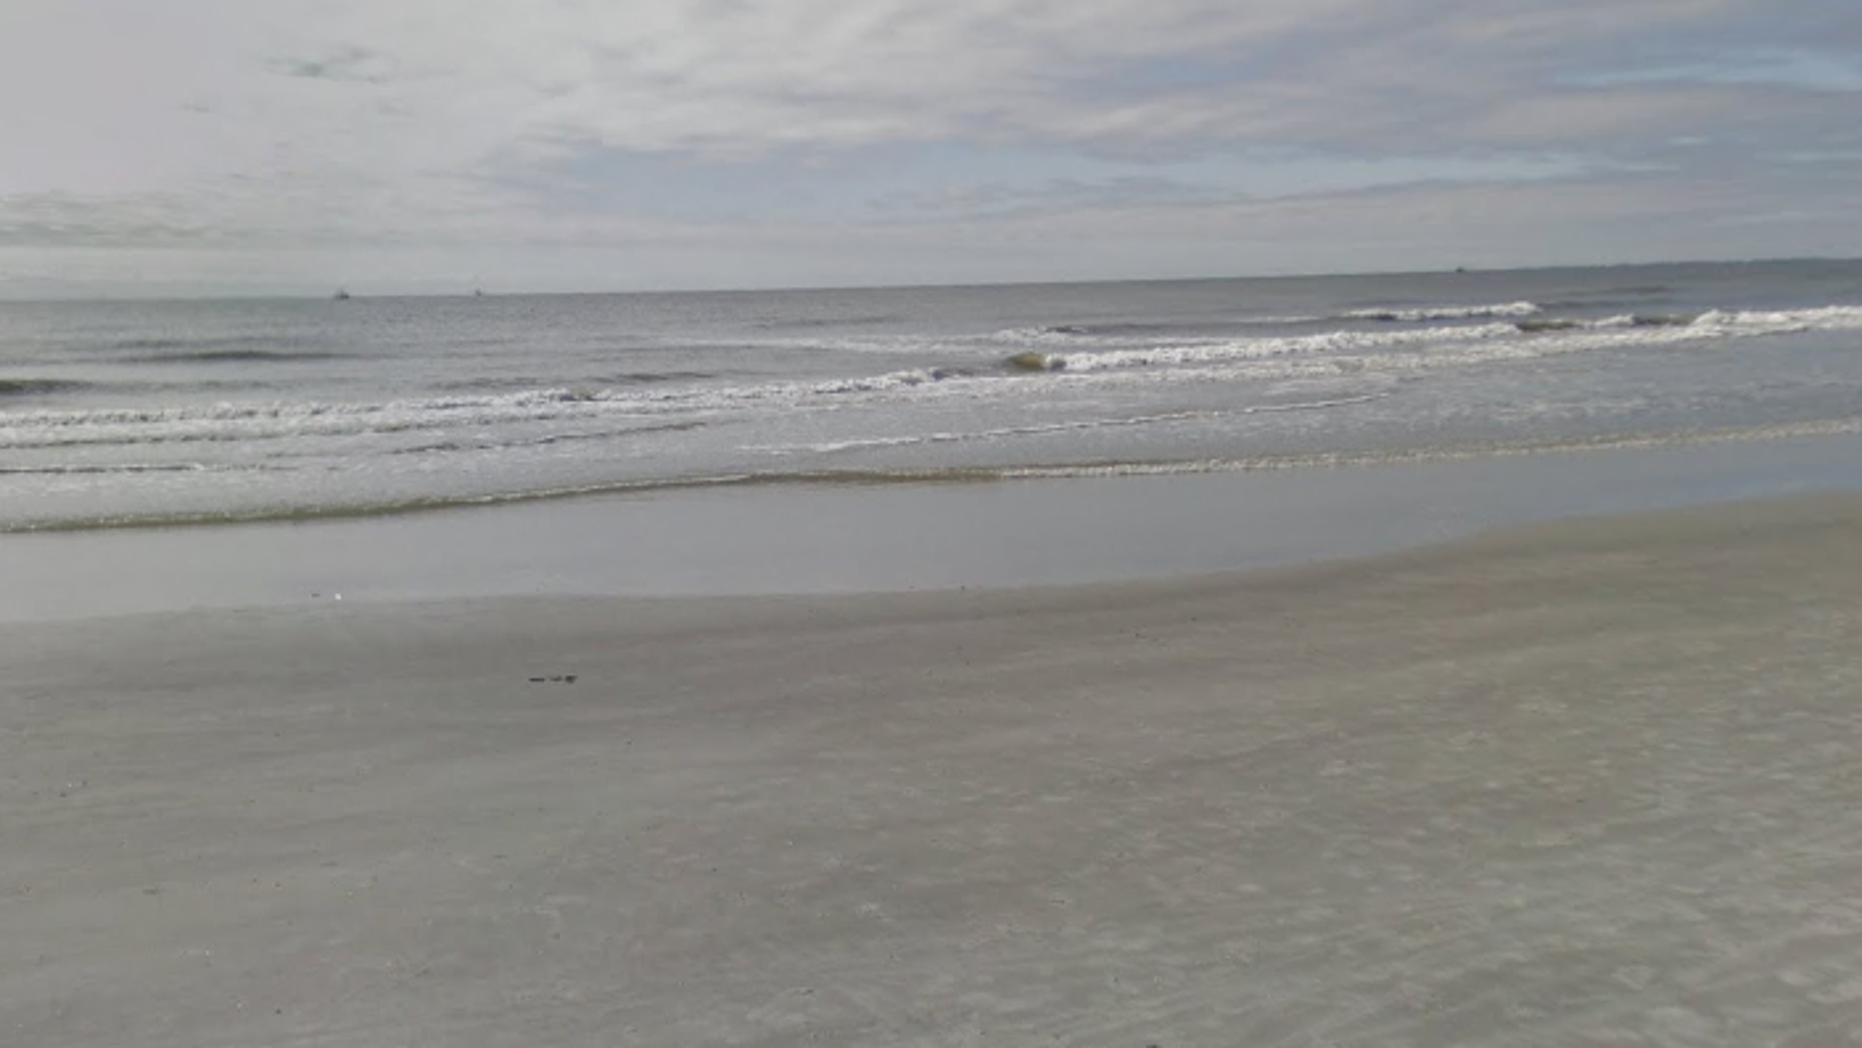 The shark bit the teenager at Hilton Head Island last month, a nearby hospital reported.